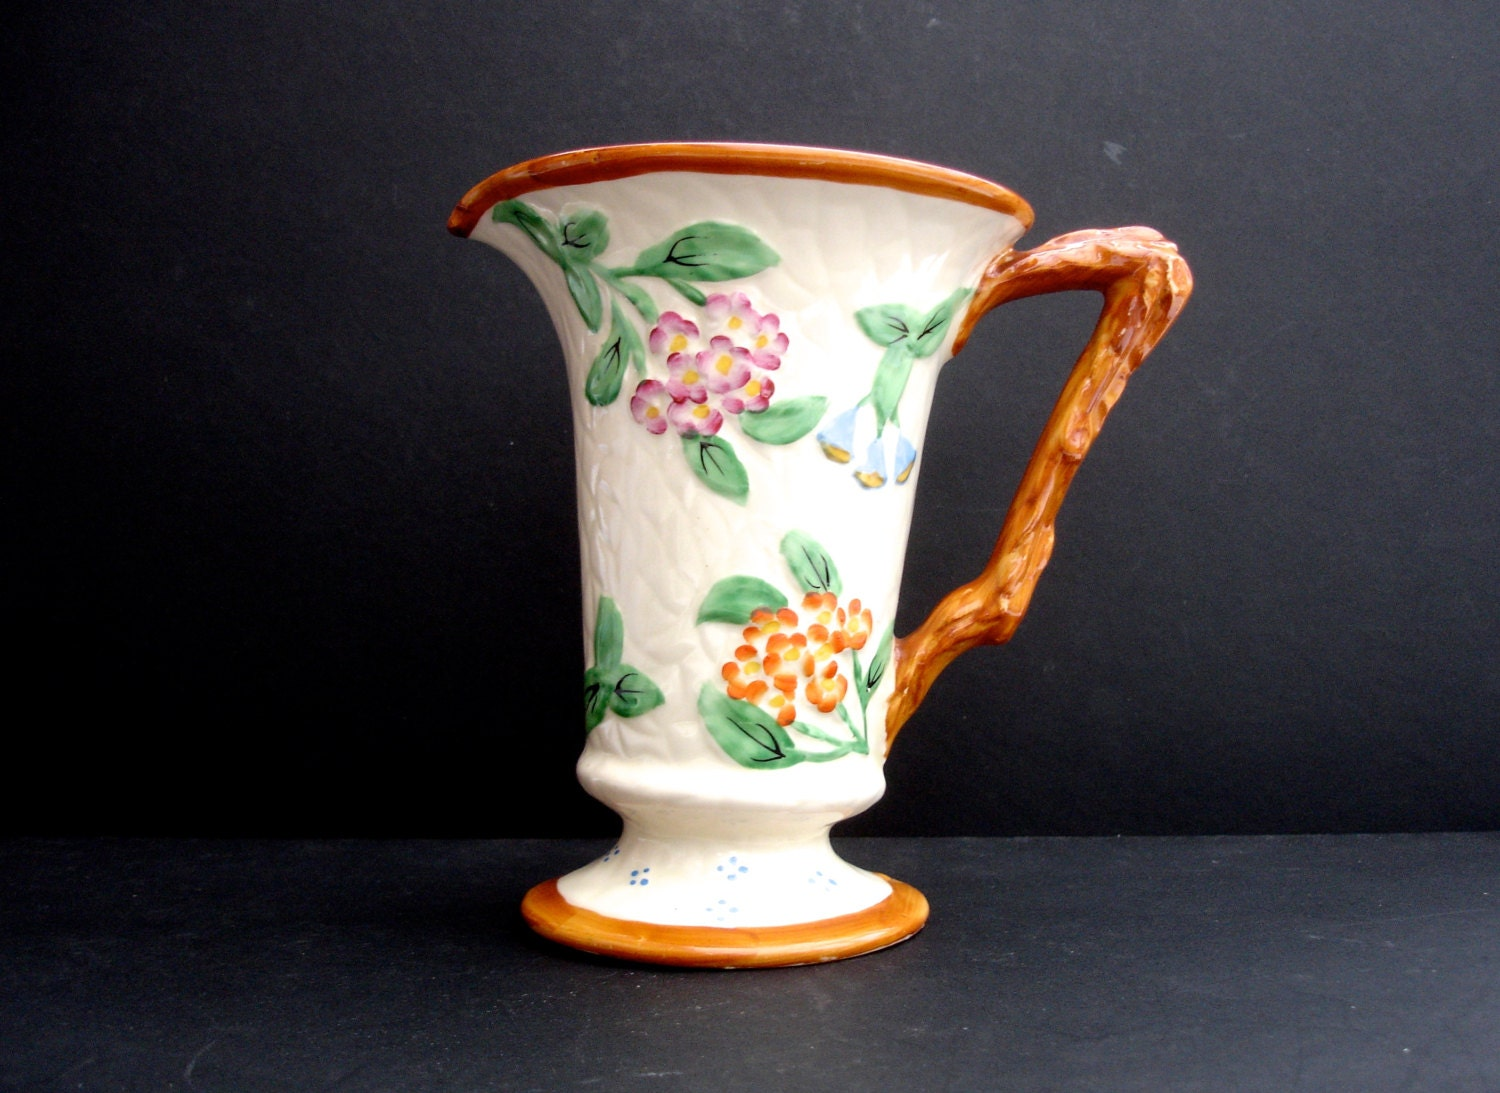 1950s James Kent Vintage Jug Flower Vase Vintage Decorative